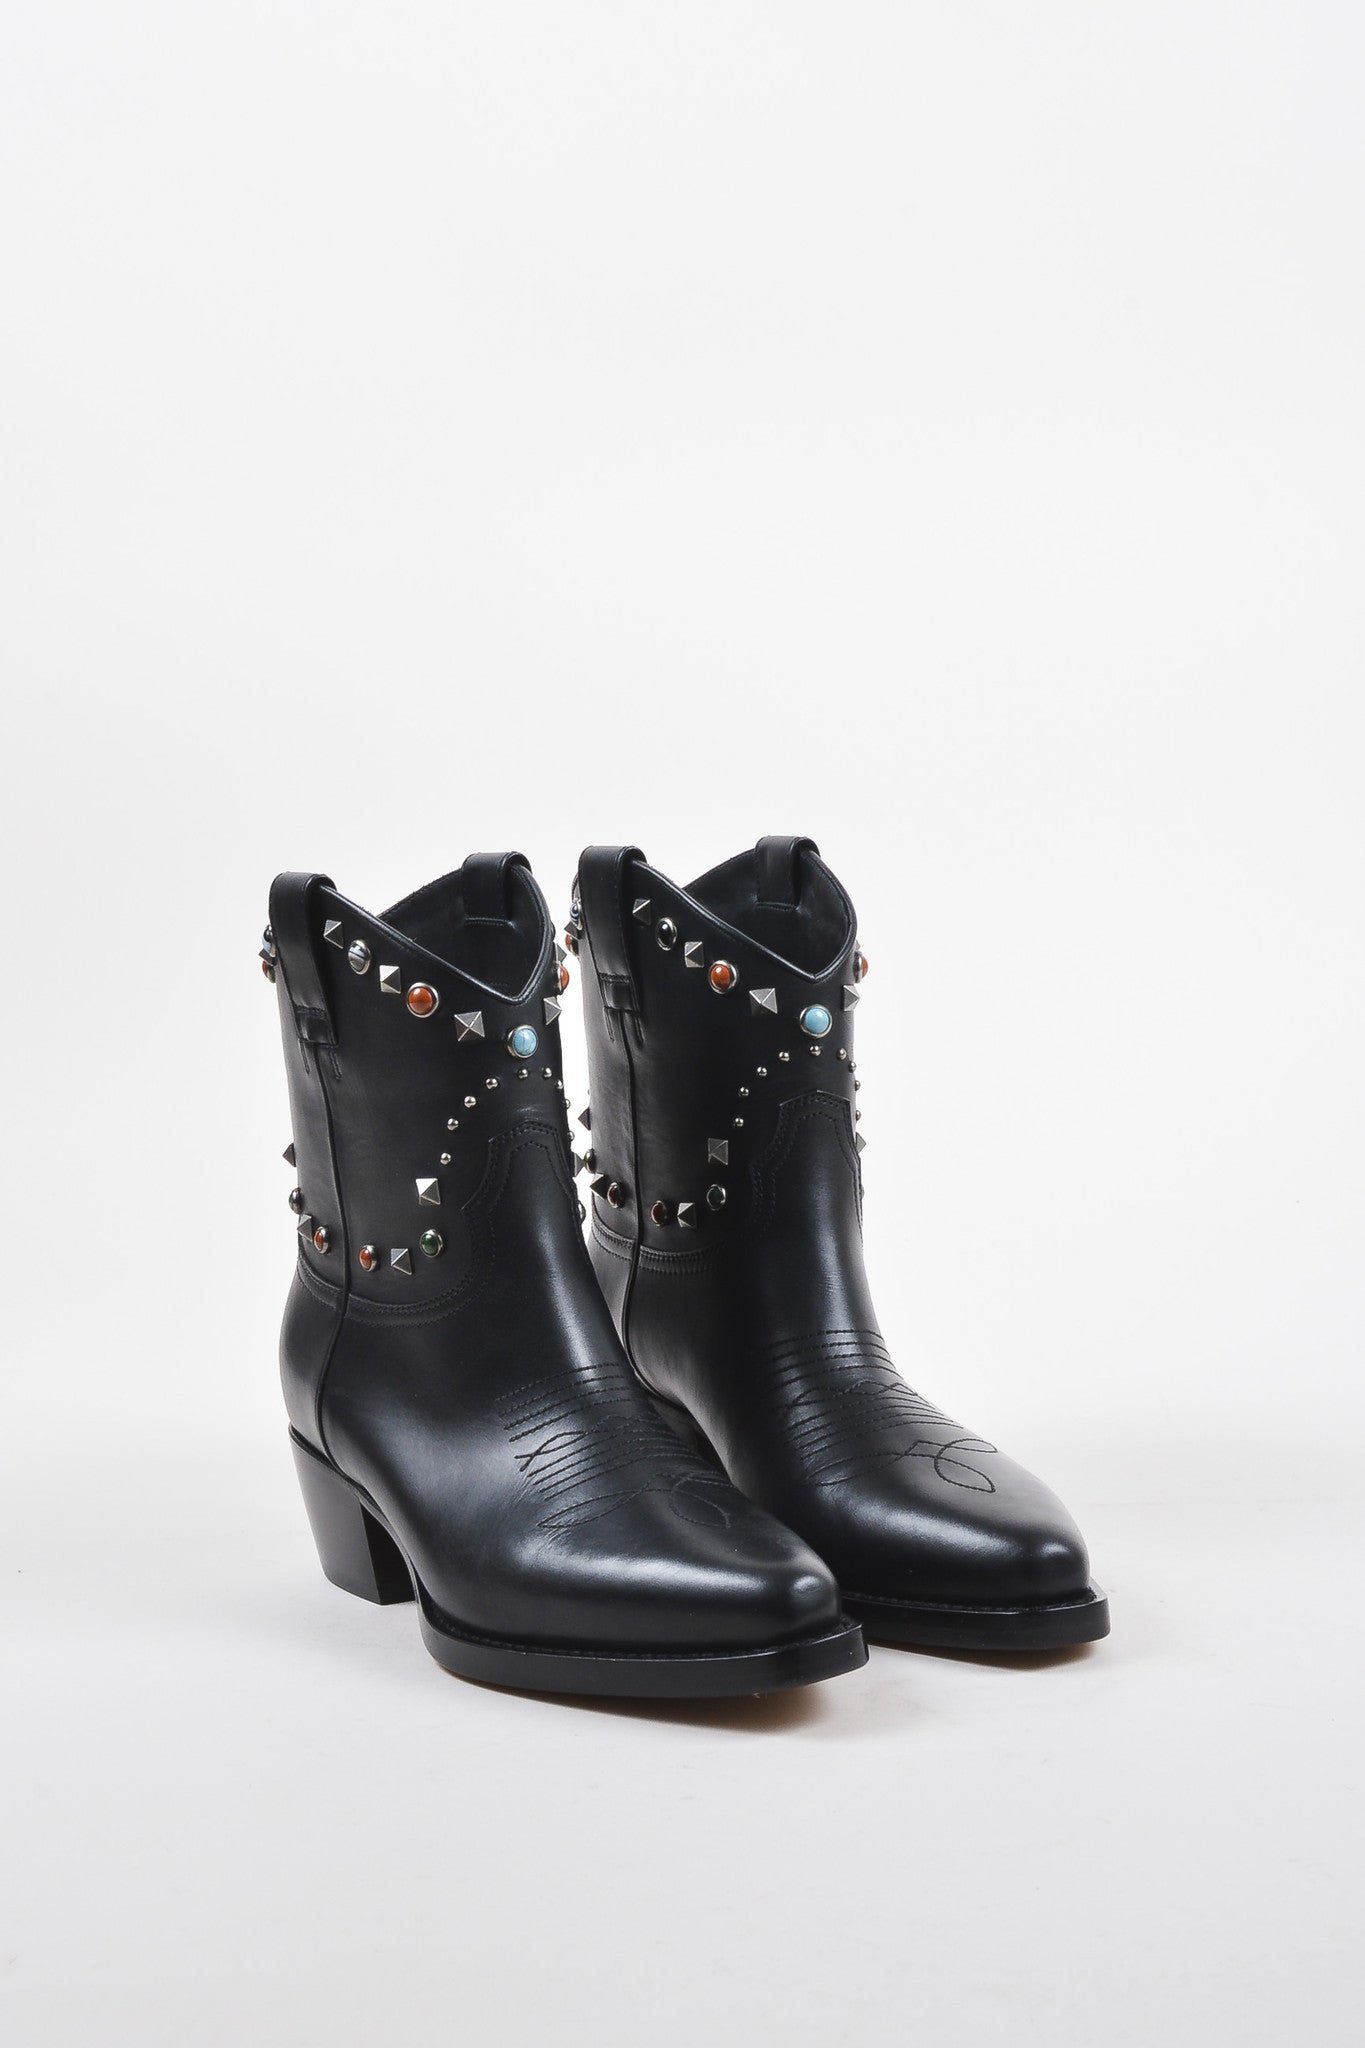 Valentino Garavani Black Leather Texan Rockstud Rolling Boots Frontview